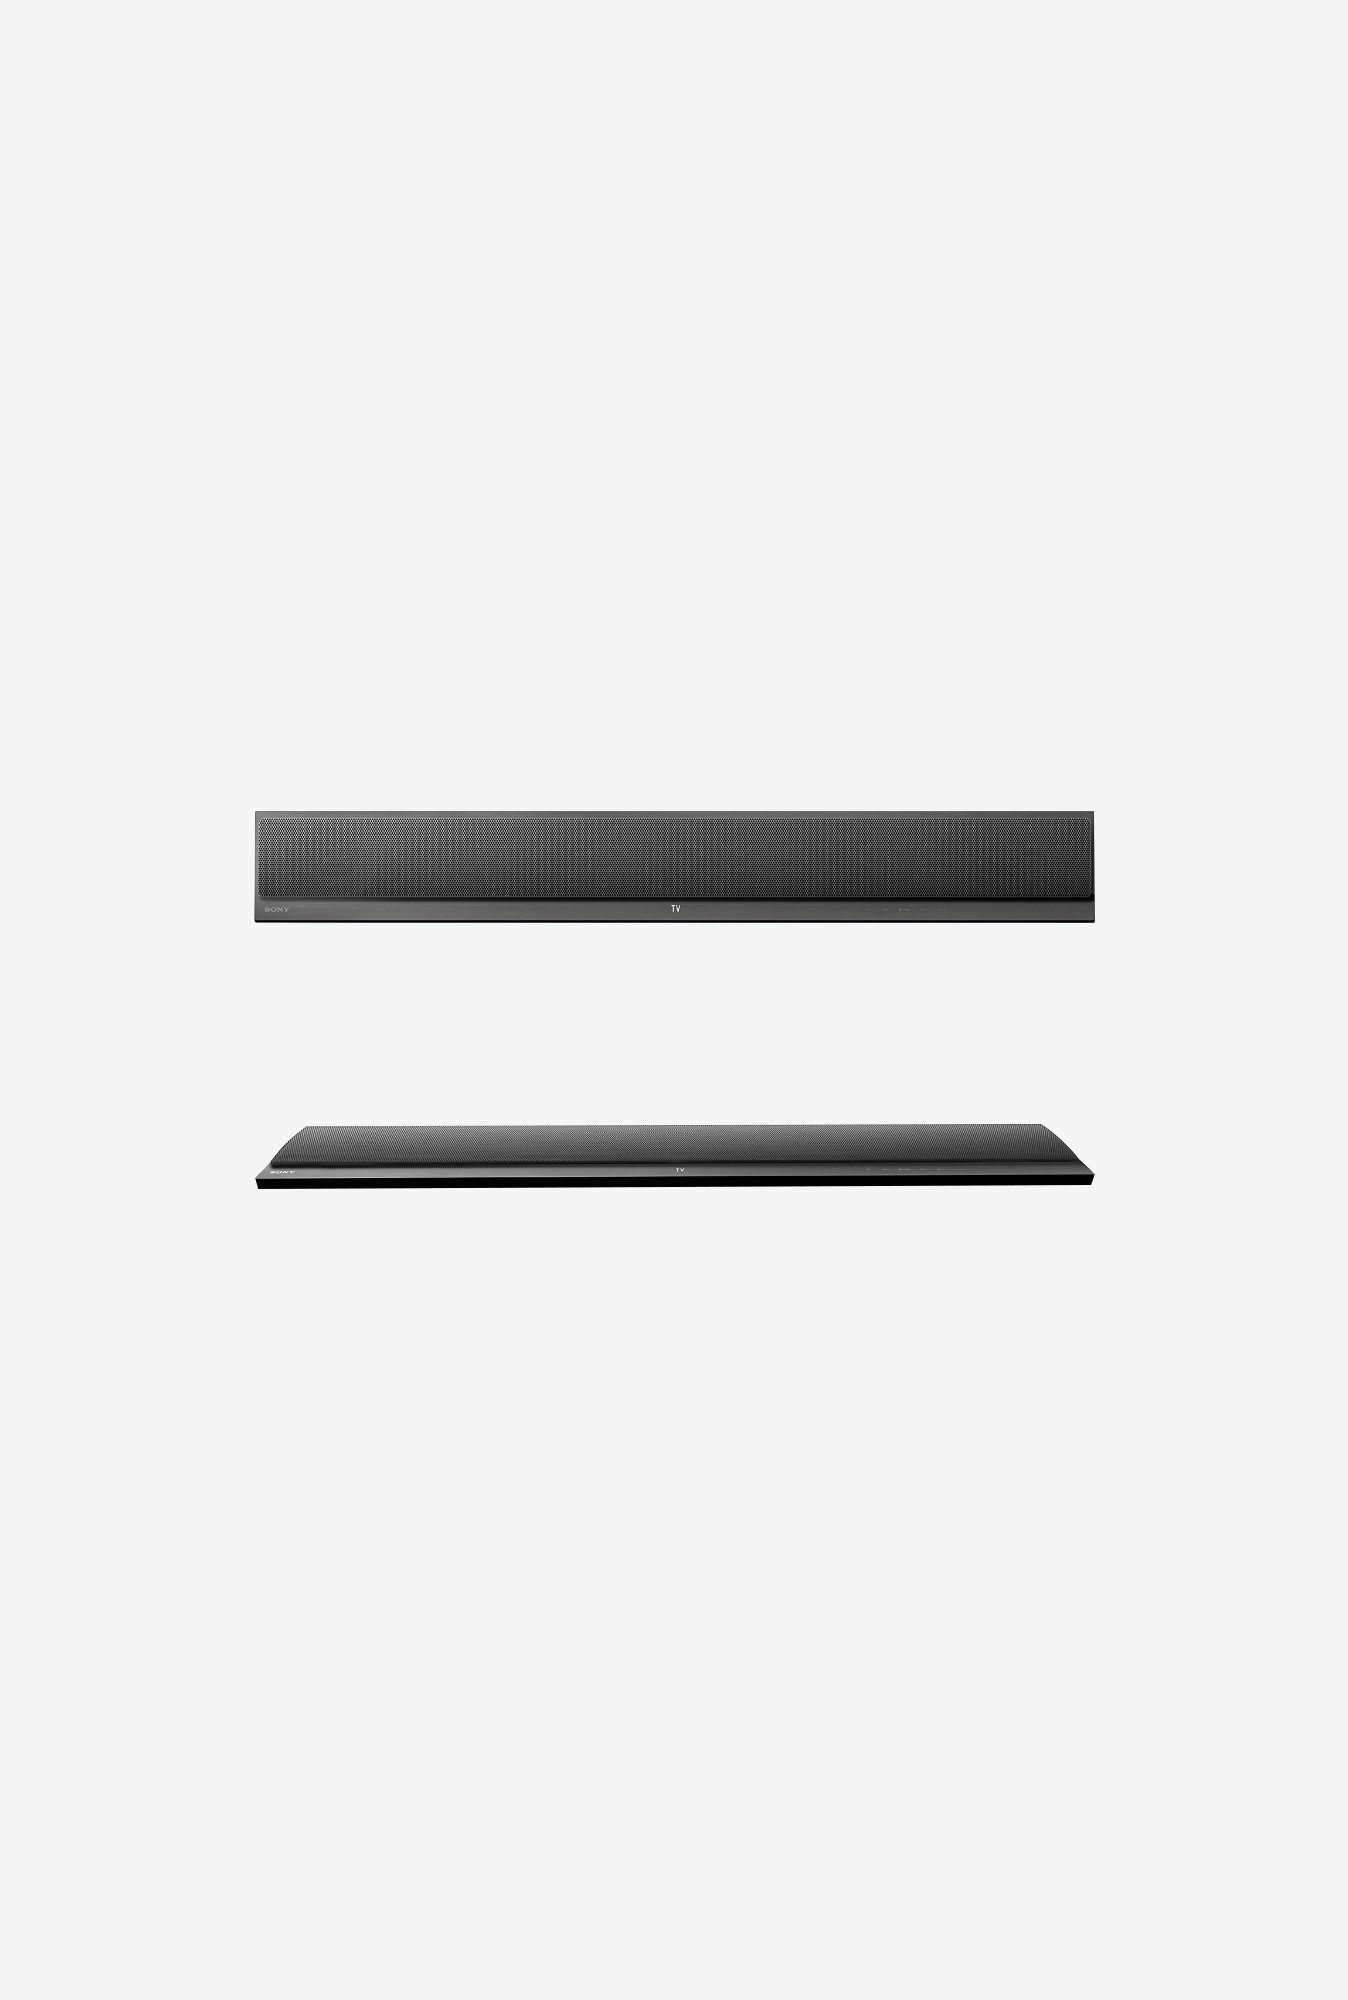 Sony HT-CT390 2.1 ch Soundbar with Subwoofer (Black)